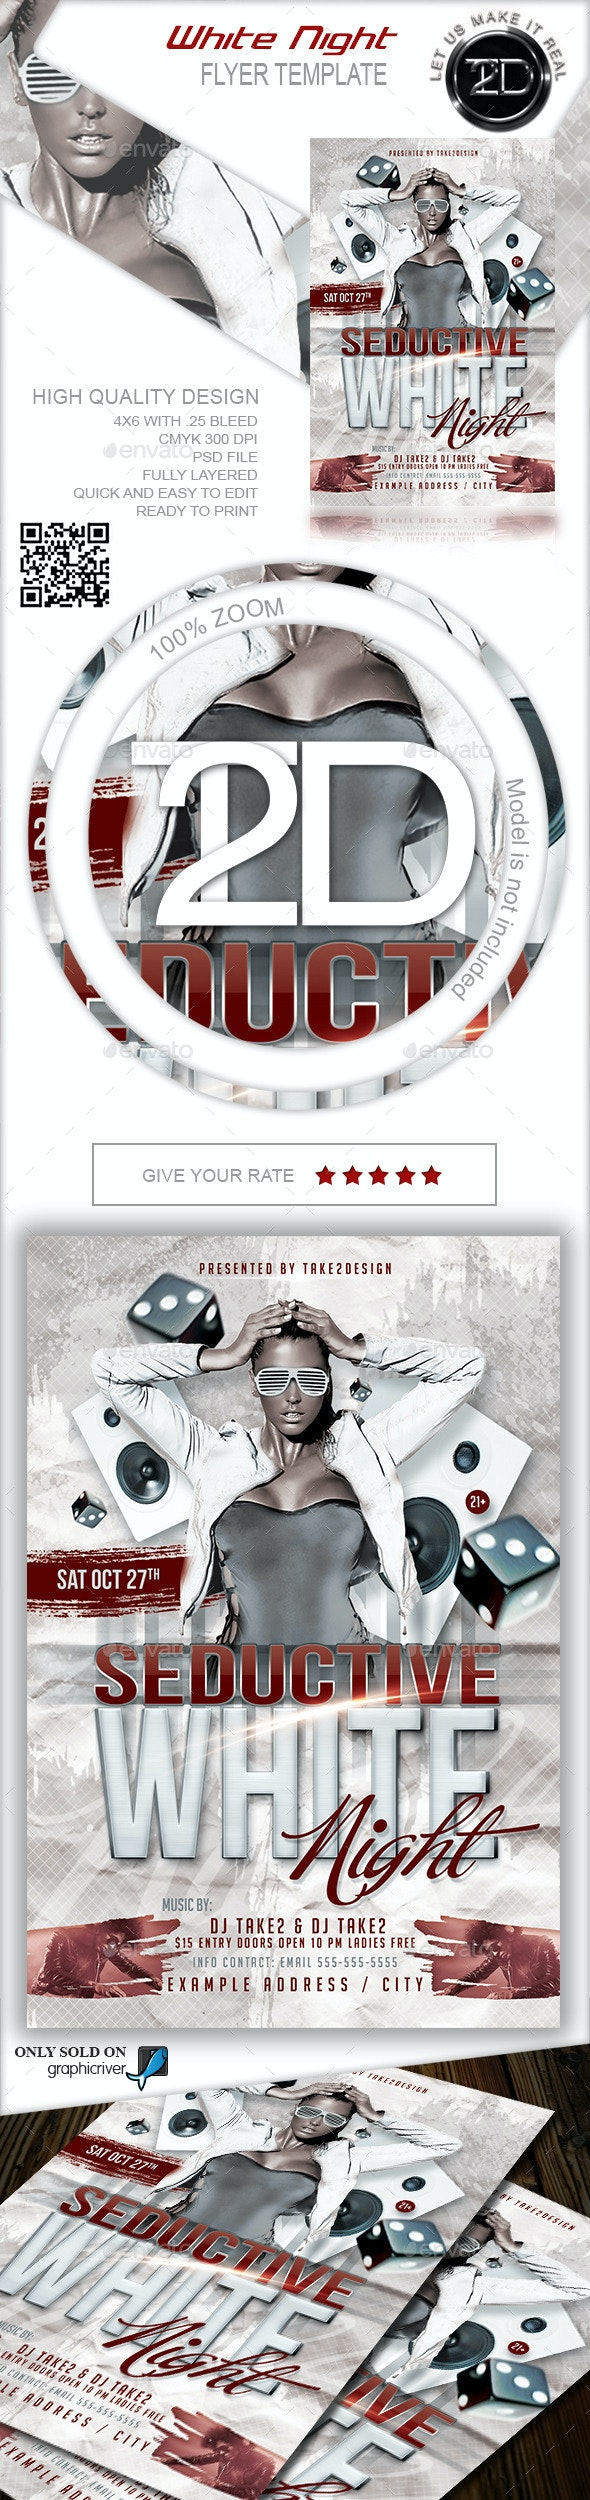 White Night Club Flyer - Clubs & Parties Events